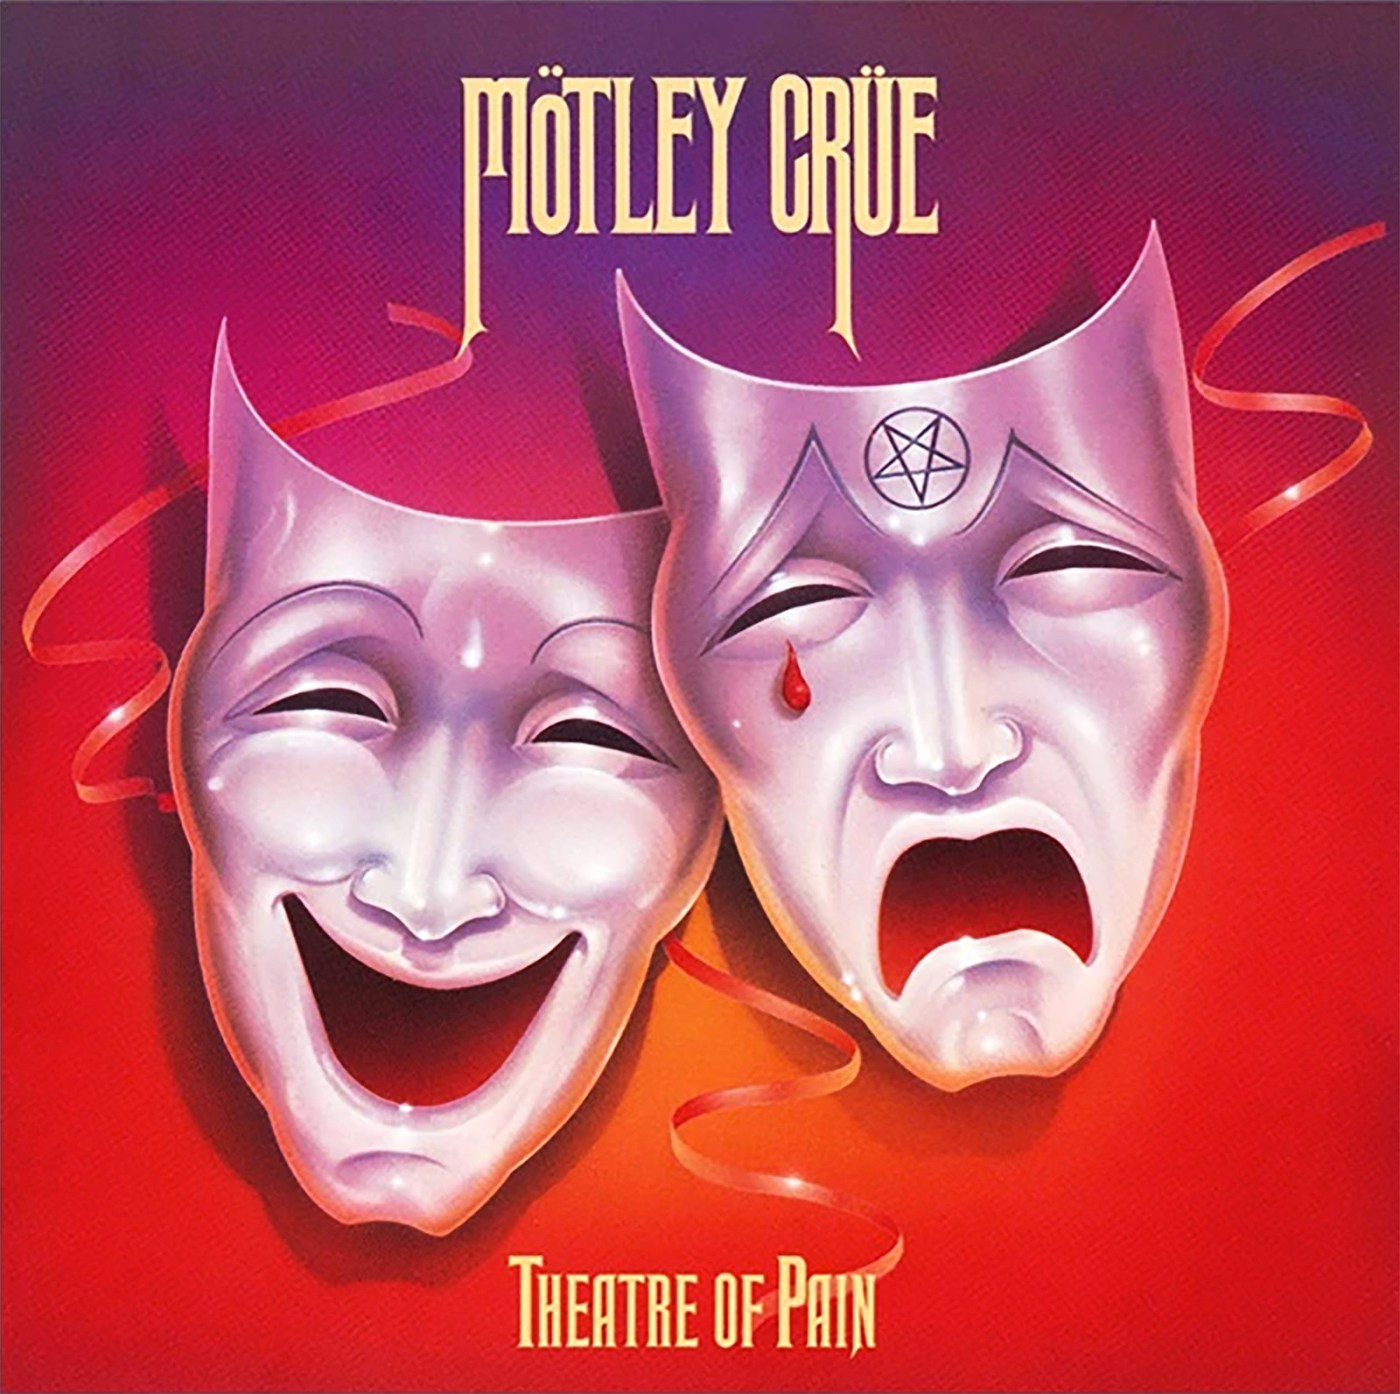 Theatre of Pain by Mötley Crüe, 1985, art direction by Bob Defrin and Nikki Sixx, and illustration by David Willardson.